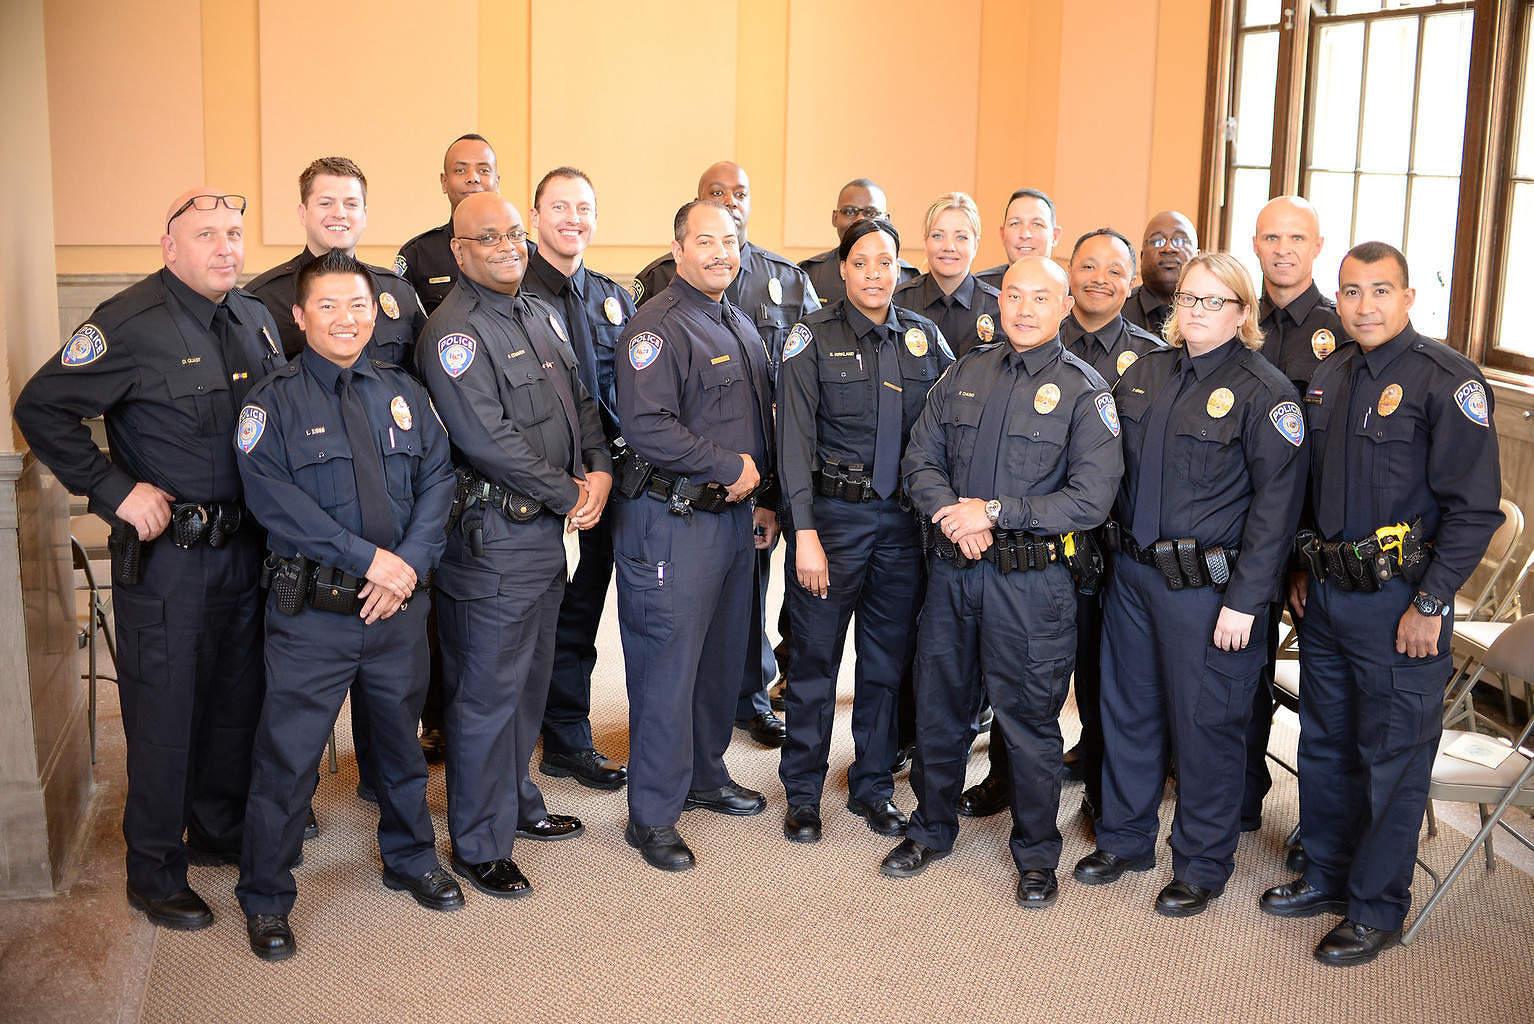 Metro Transit officers pose for a photograph after receiving their badges after the Promotions & Swearing In Ceremony in 2014.